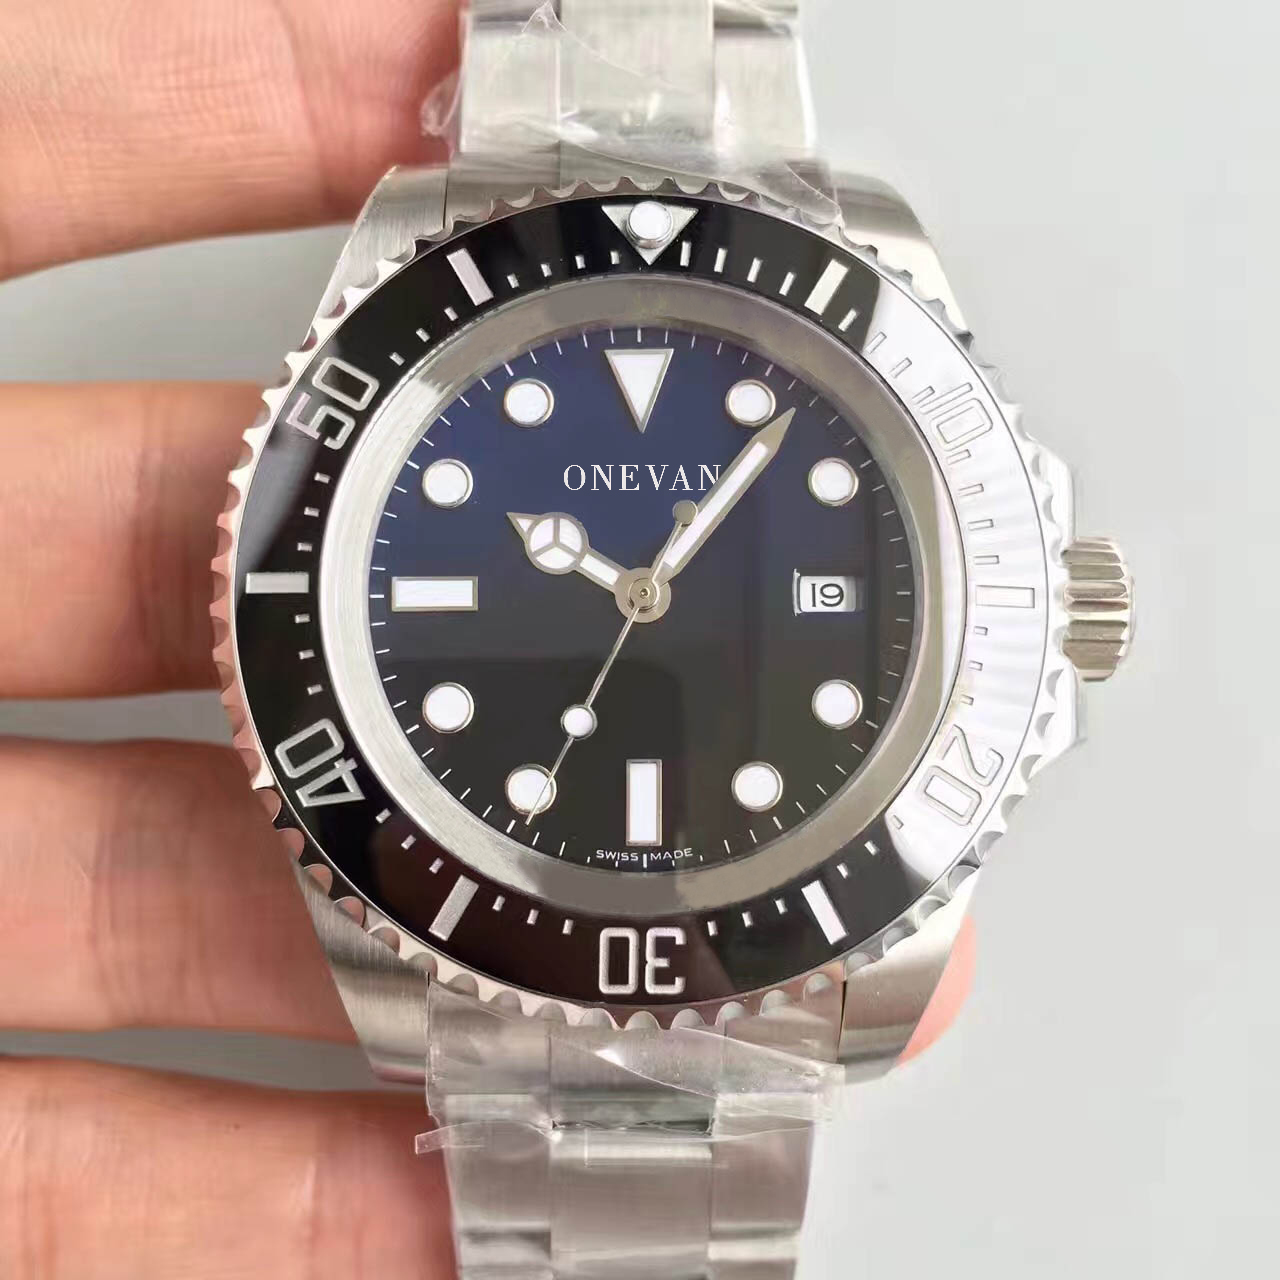 D-Blue <font><b>Deep</b></font> aaa Ceramic Bezel <font><b>SEA</b></font> Date Sapphire Cystal Stainless Steel With Glide Lock Clasp Automatic Mechanical Dwelle <font><b>Watches</b></font> image